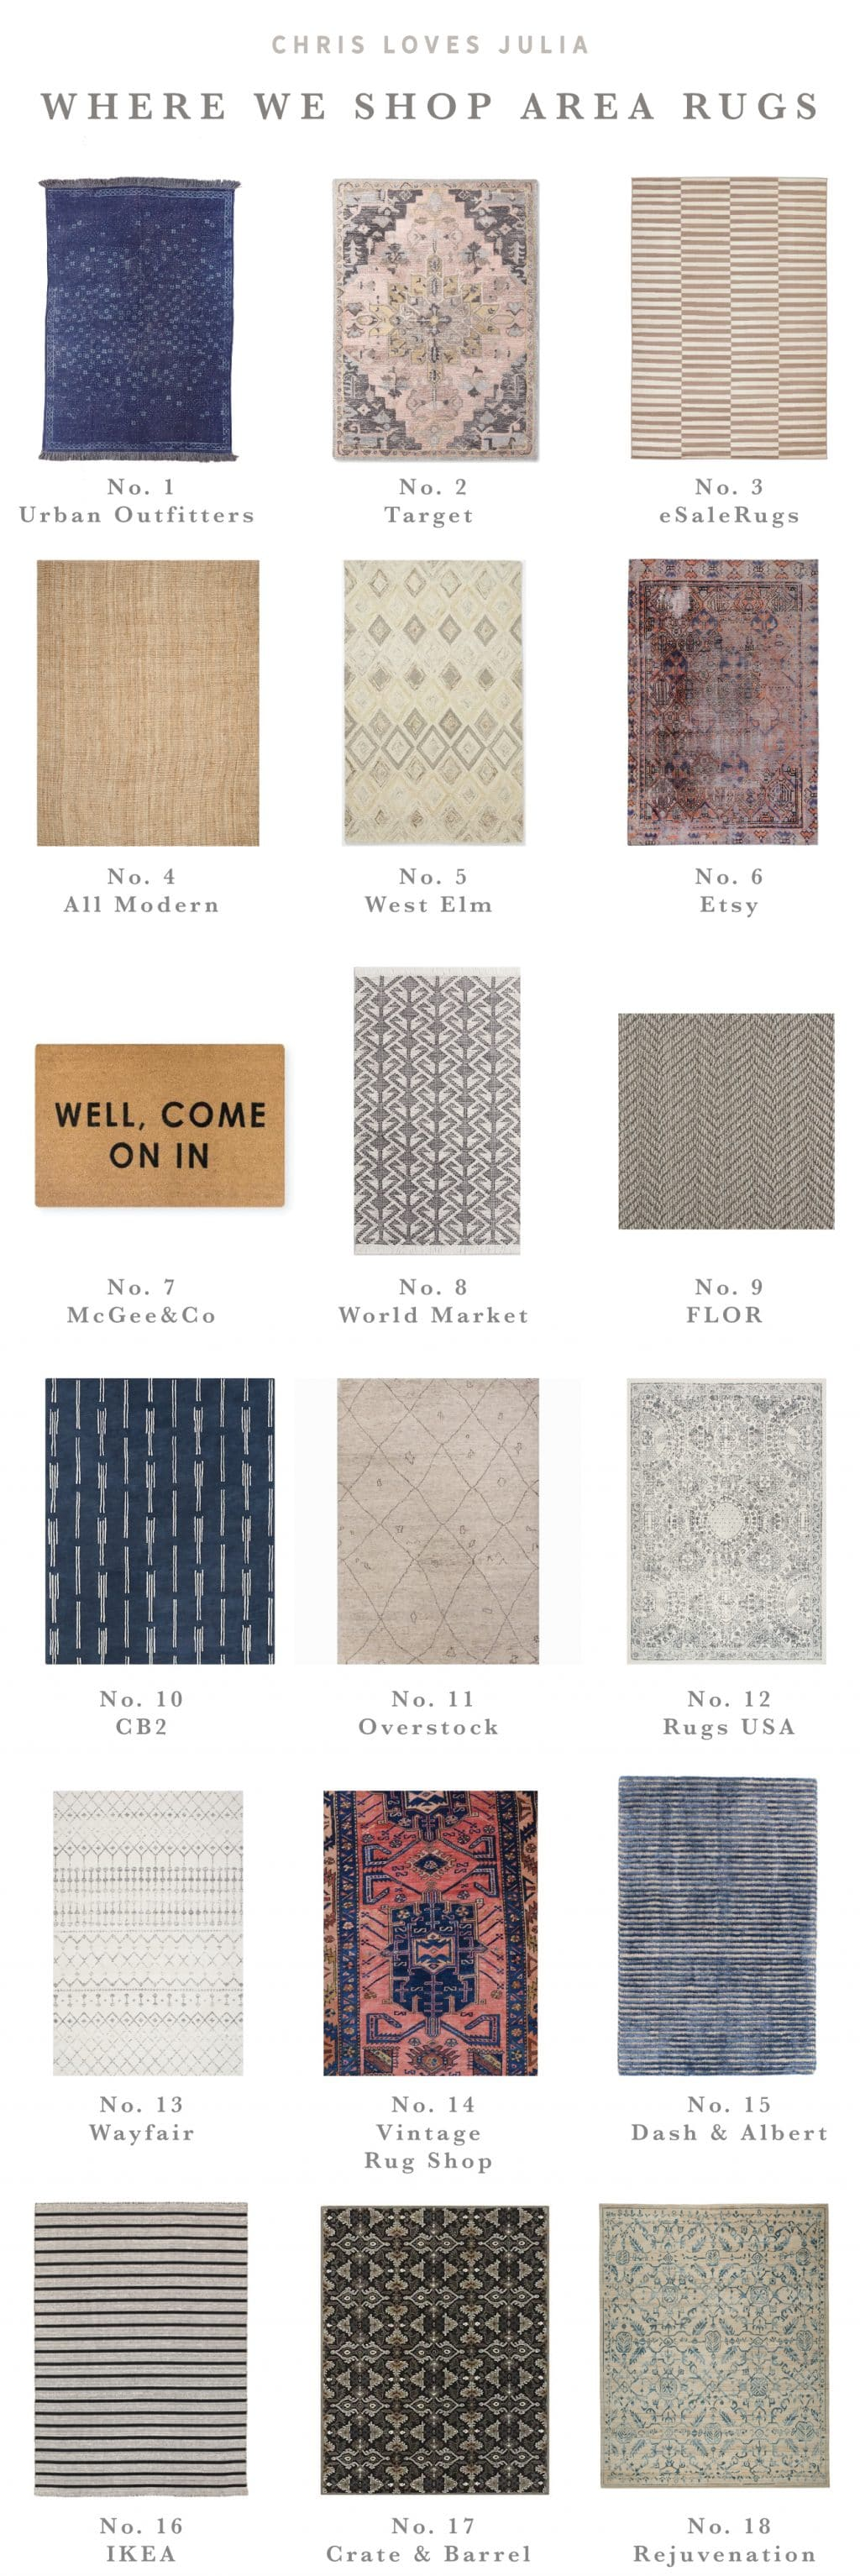 Our Favorite Places To Shop For Area Rugs Chris Loves Julia